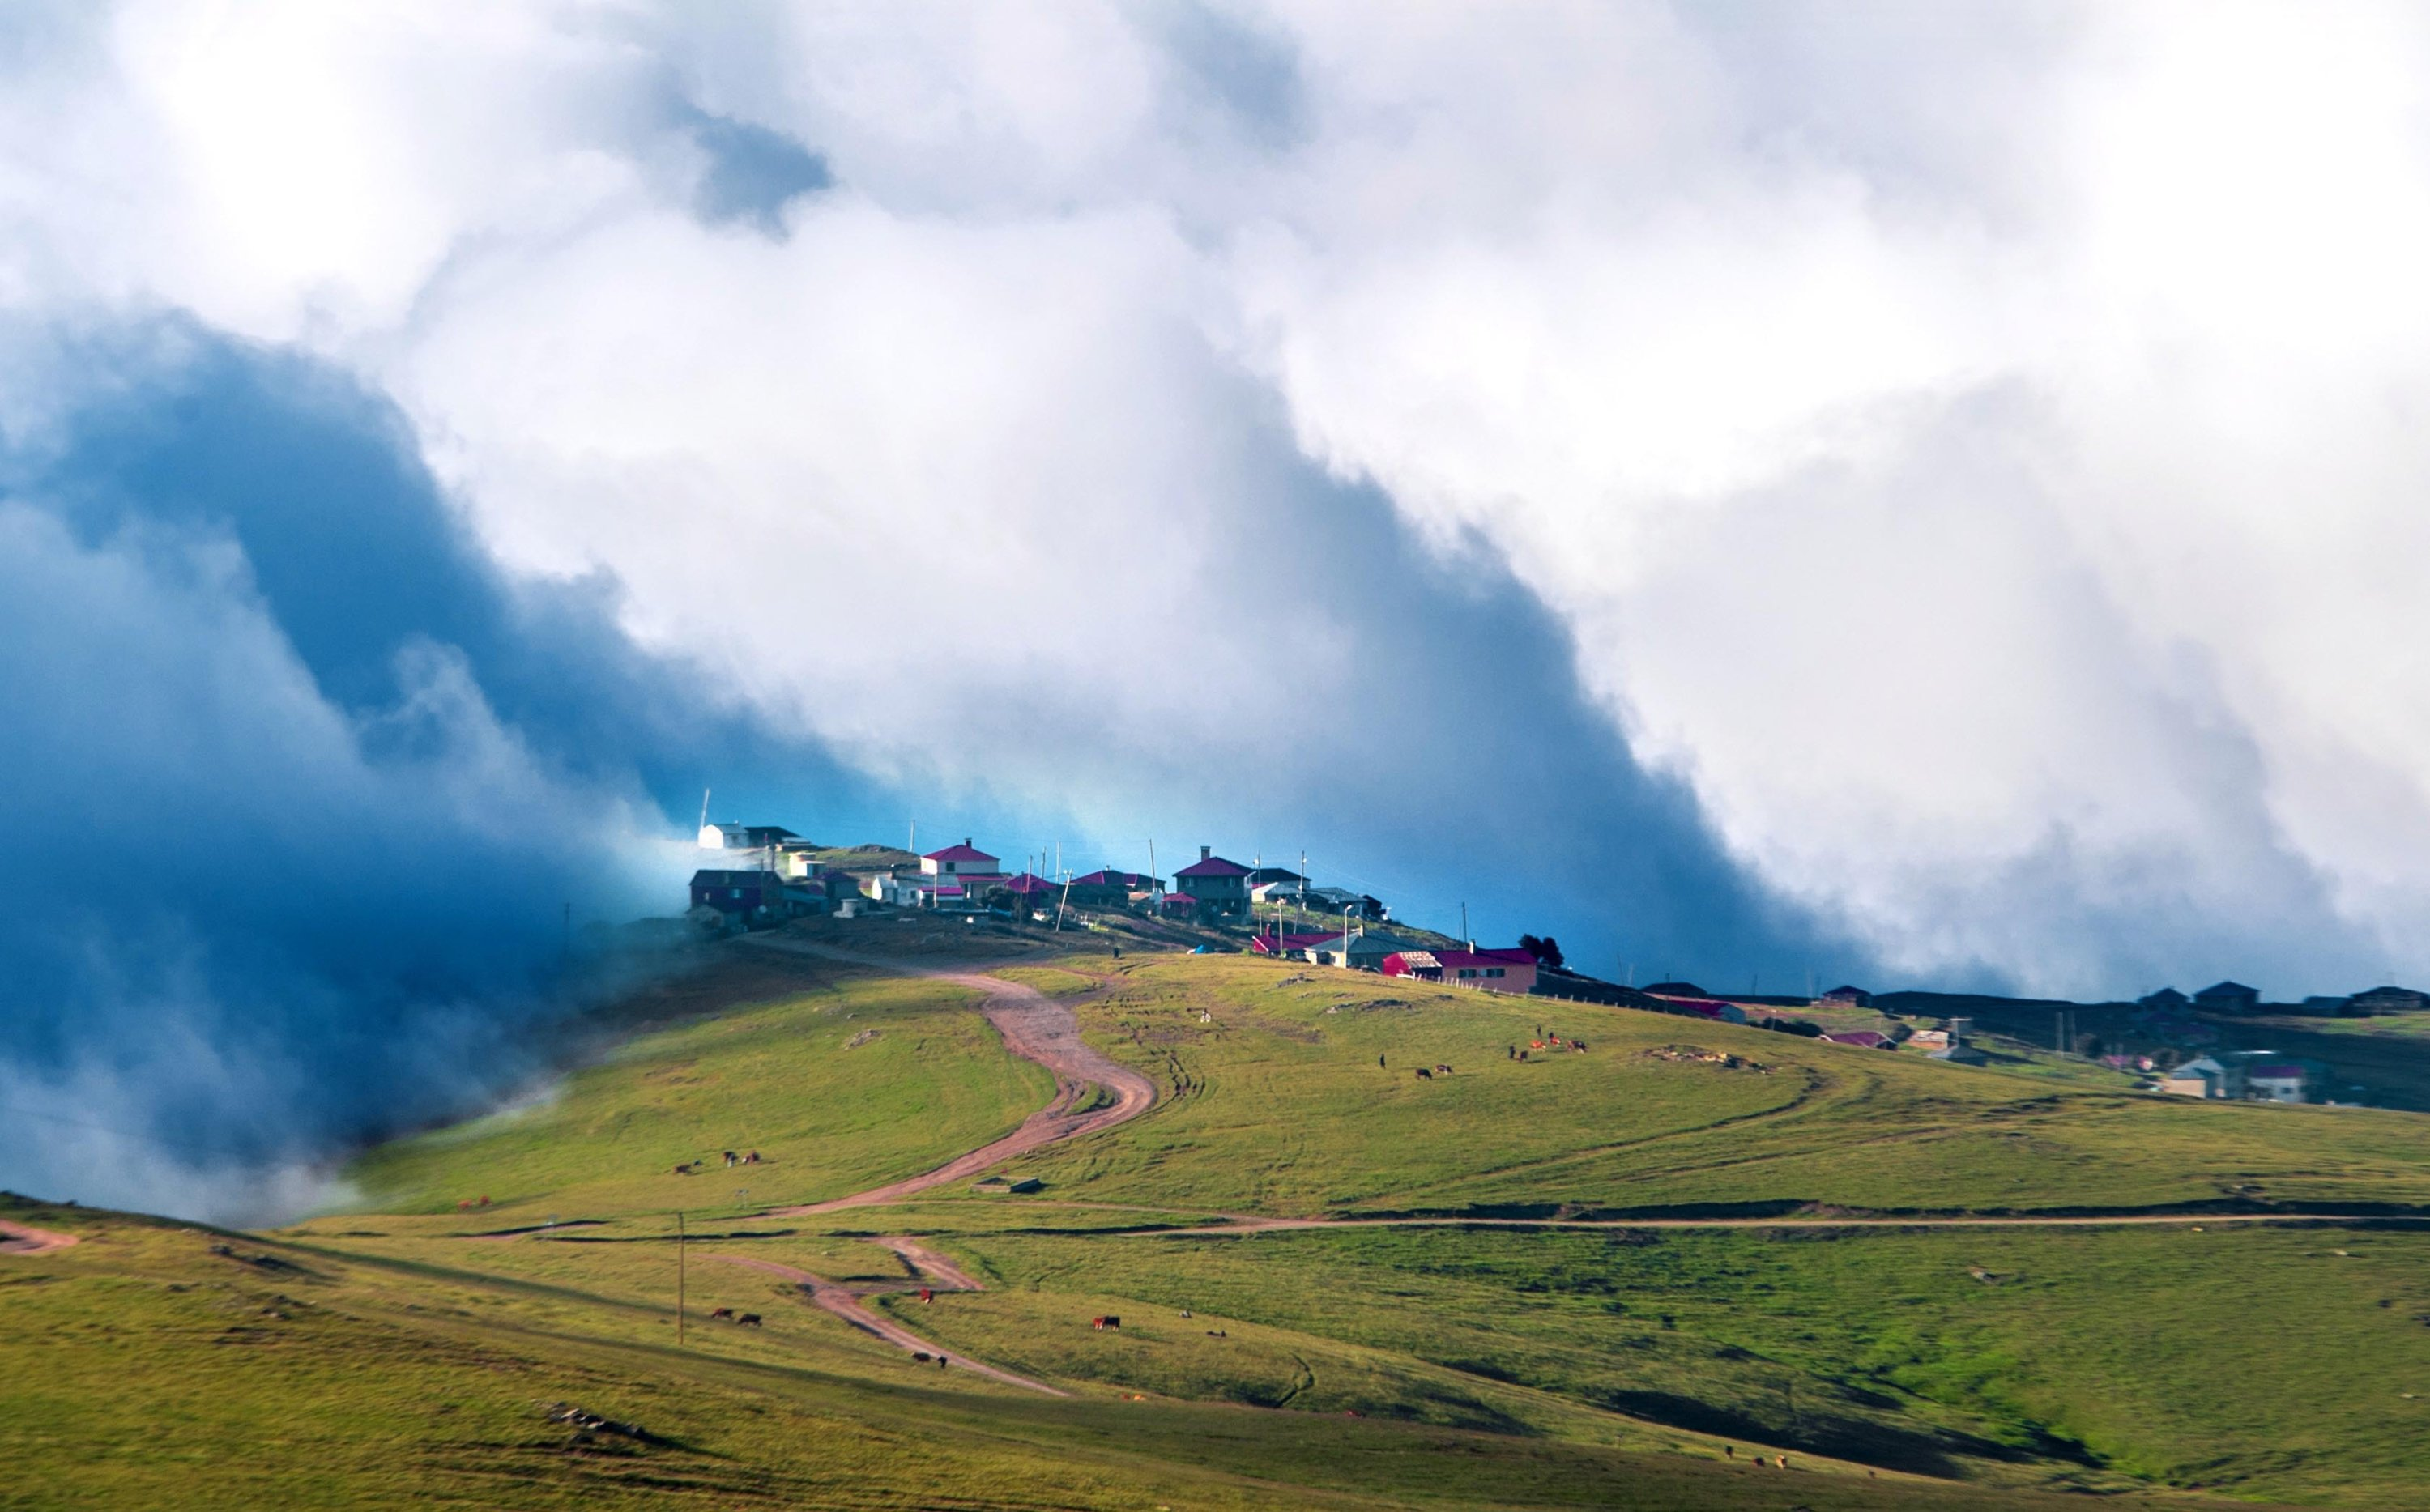 With its cloudy backdrop and verdant landscape, Trabzon's Beypınarı Plateau is a photographer's paradise. (DHA Photo)